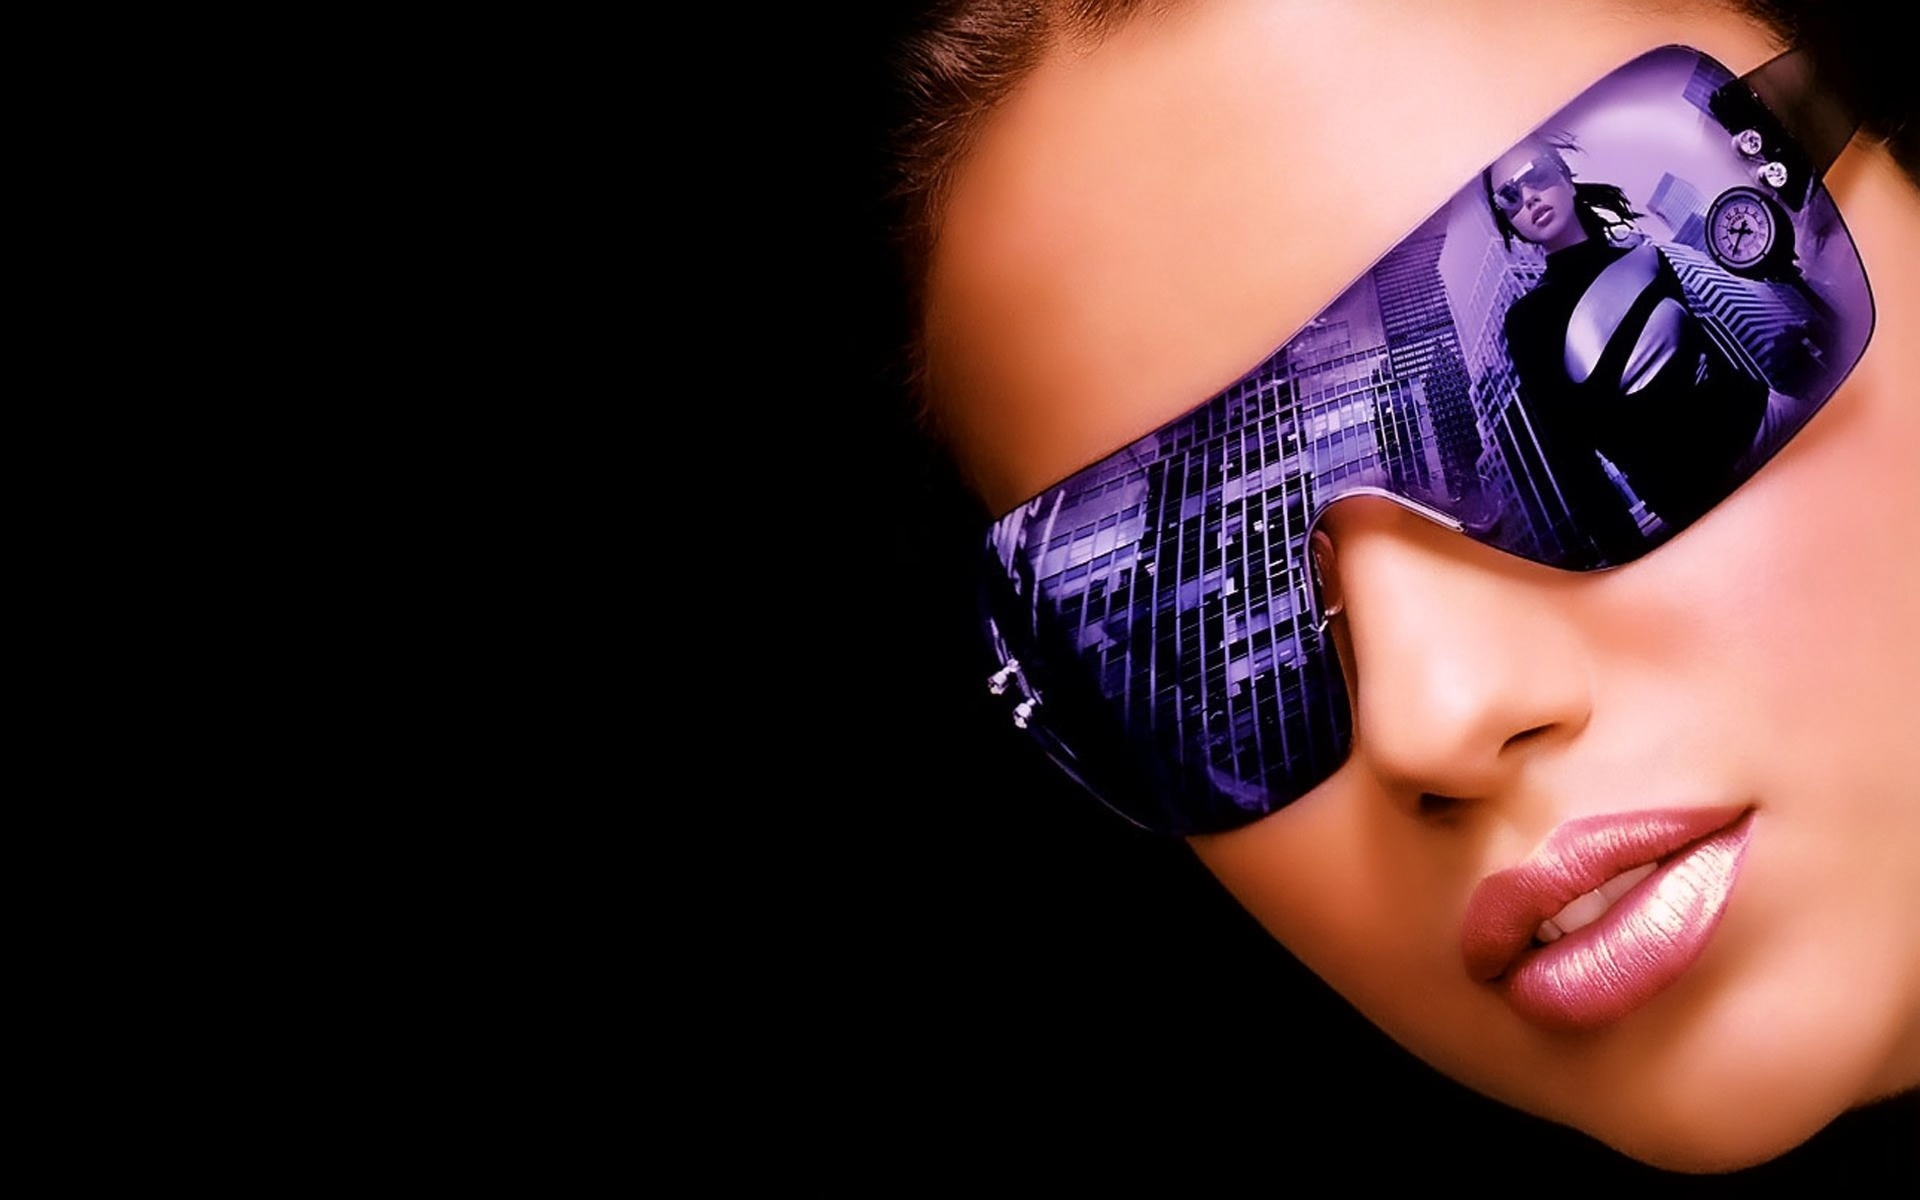 Adriana lima sunglasses hd wallpaper voltagebd